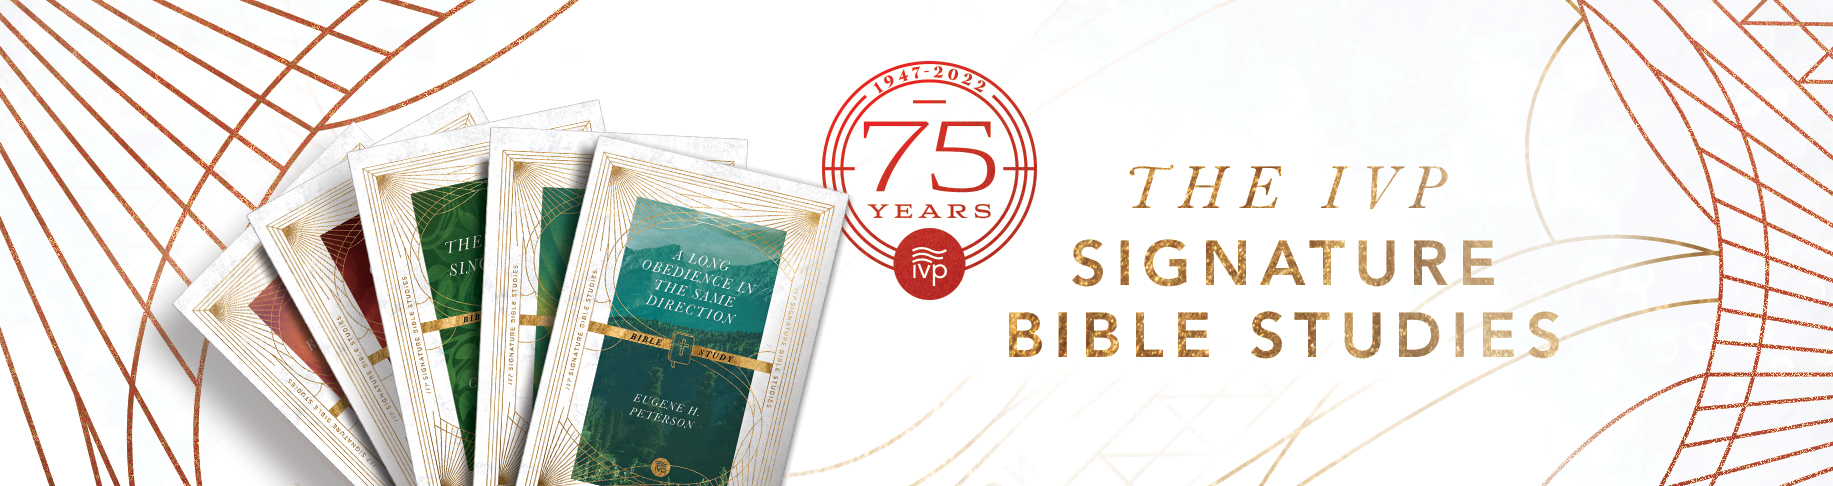 IVP Signature Bible Studies